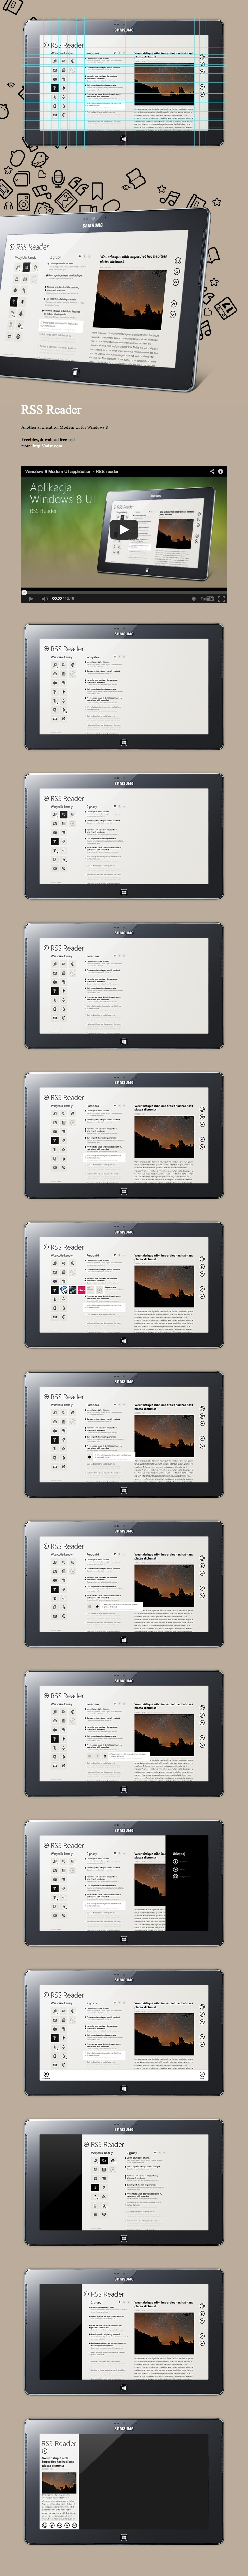 "RSS Reeder, Windows 8 UI mobile application by Michal Galubinski, via Behance *** Aplikacja pod Windows 8 Modern UI, ""RSS Reader"" – mobile application design."